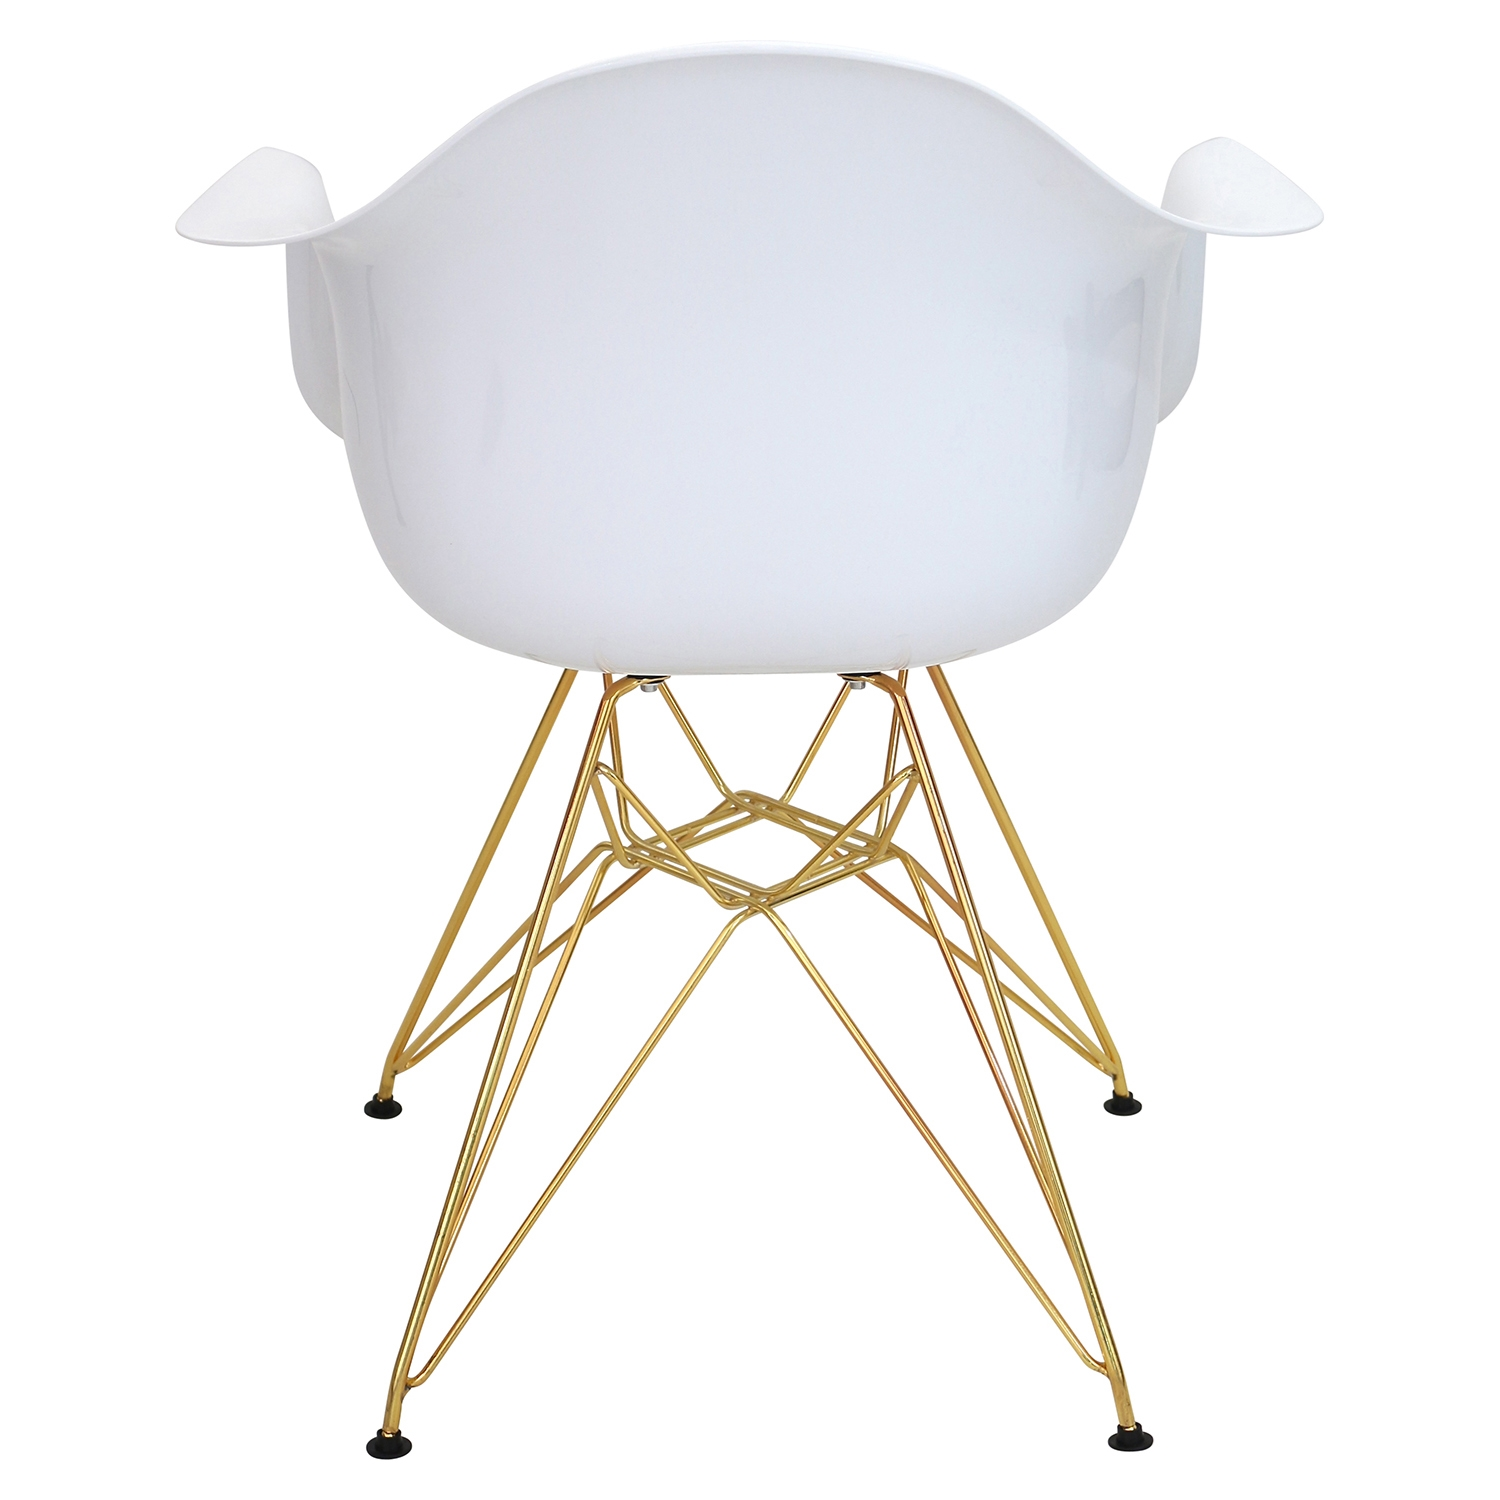 Neo Flair Chair - White, Gold - LMS-CH-NFLABS-W-AU